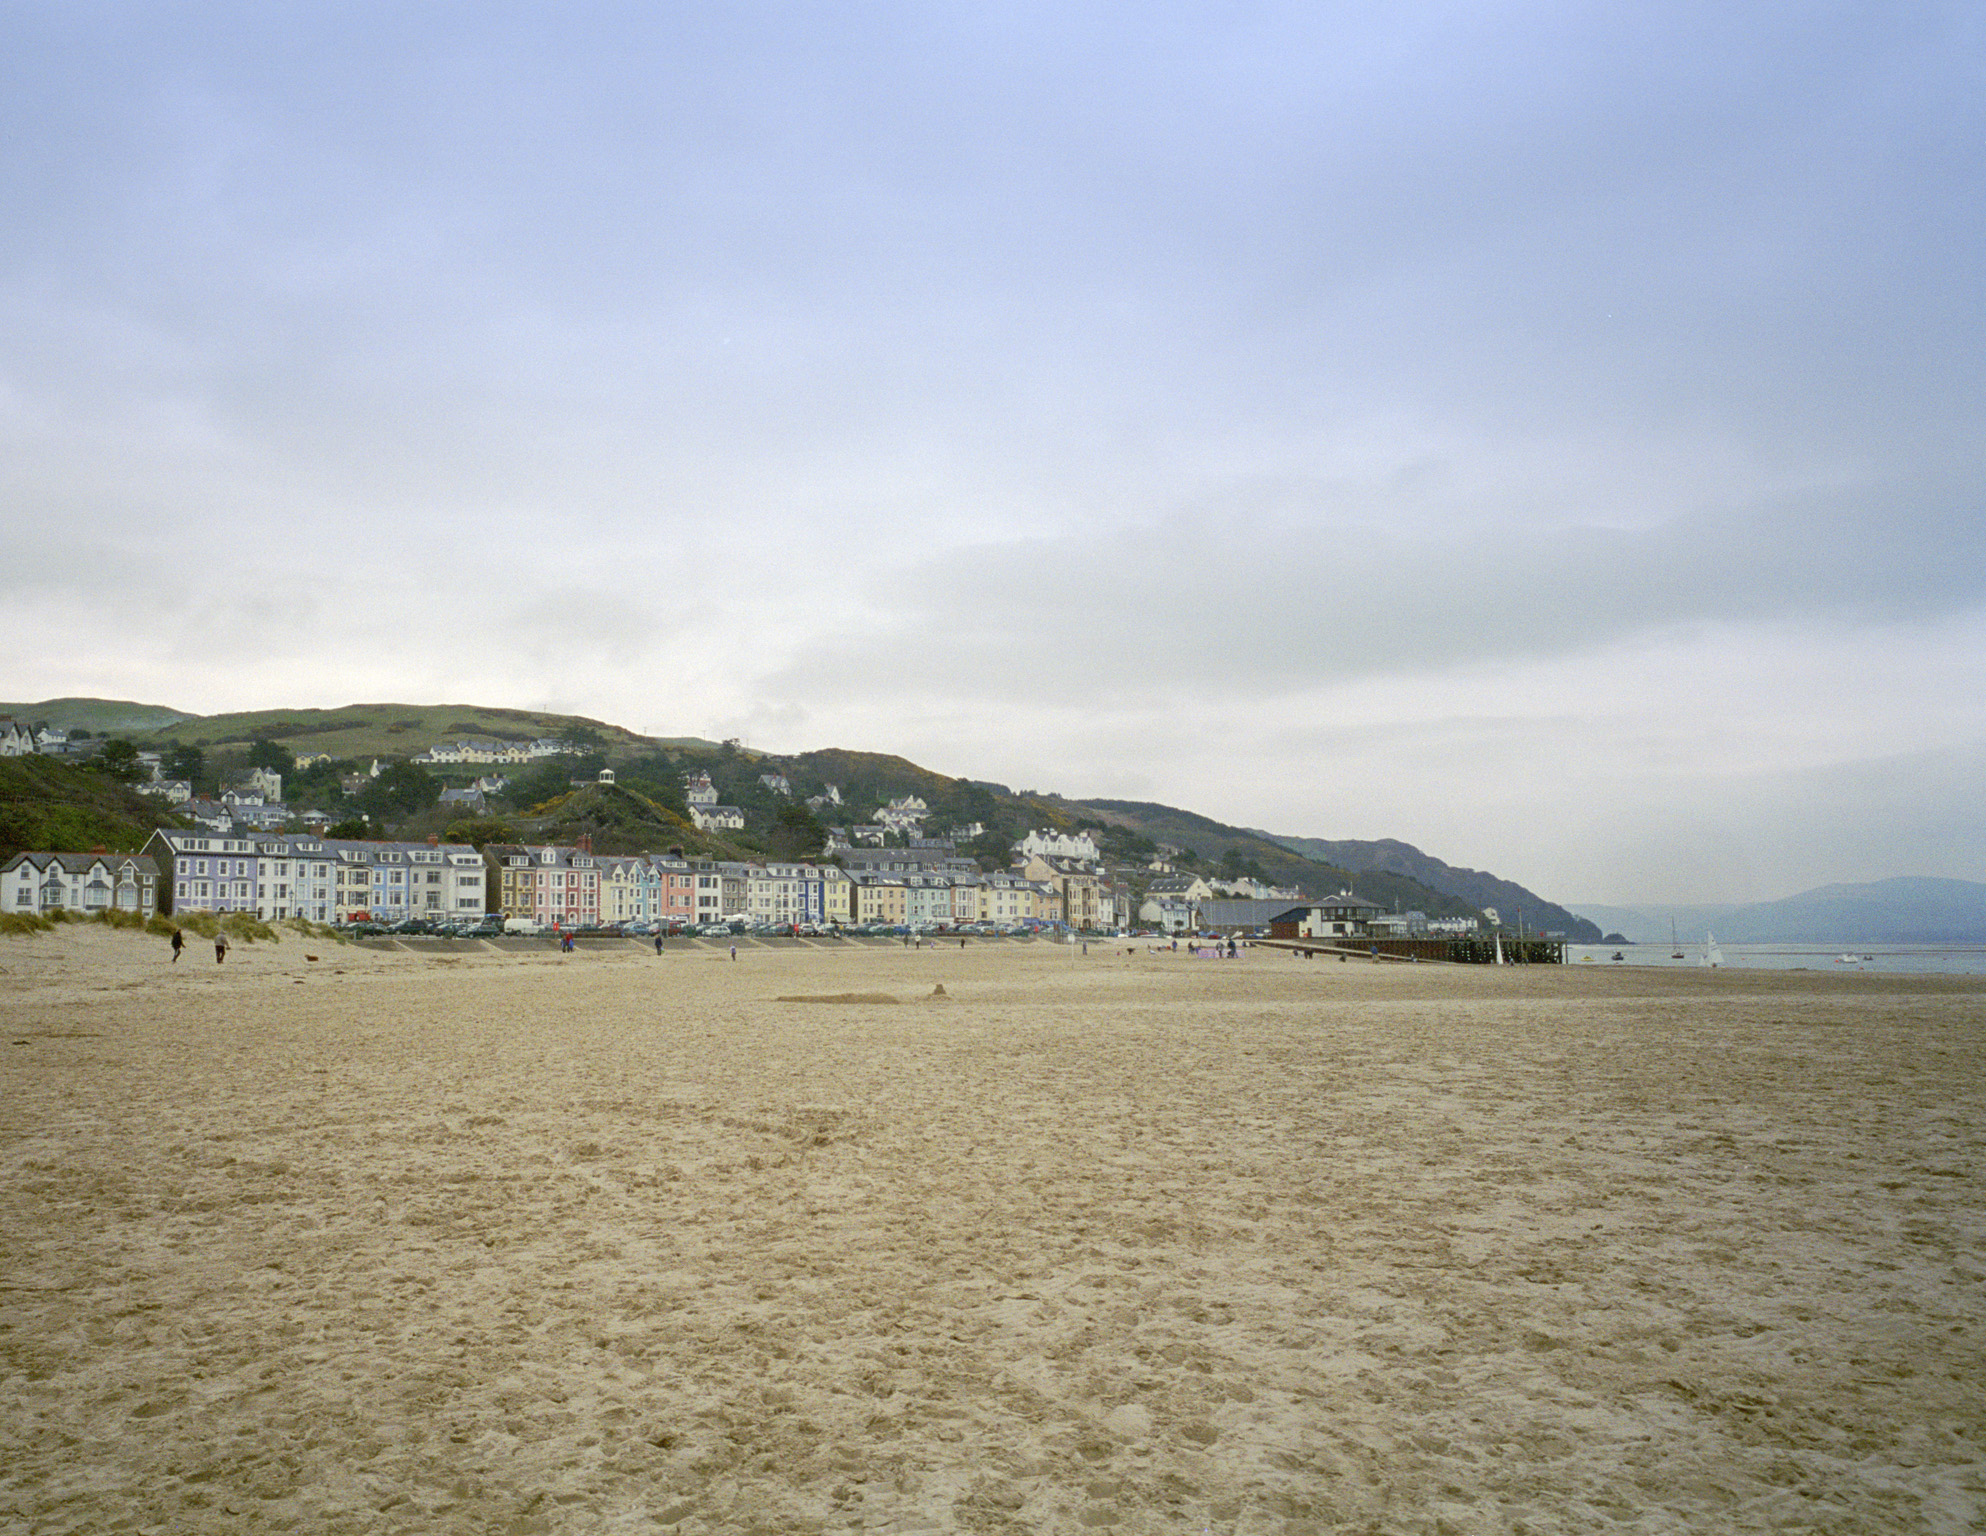 Aberdyfi or Aberdovey beach in the little harbour resort set within the Snowdonia National Park, Wales, UK